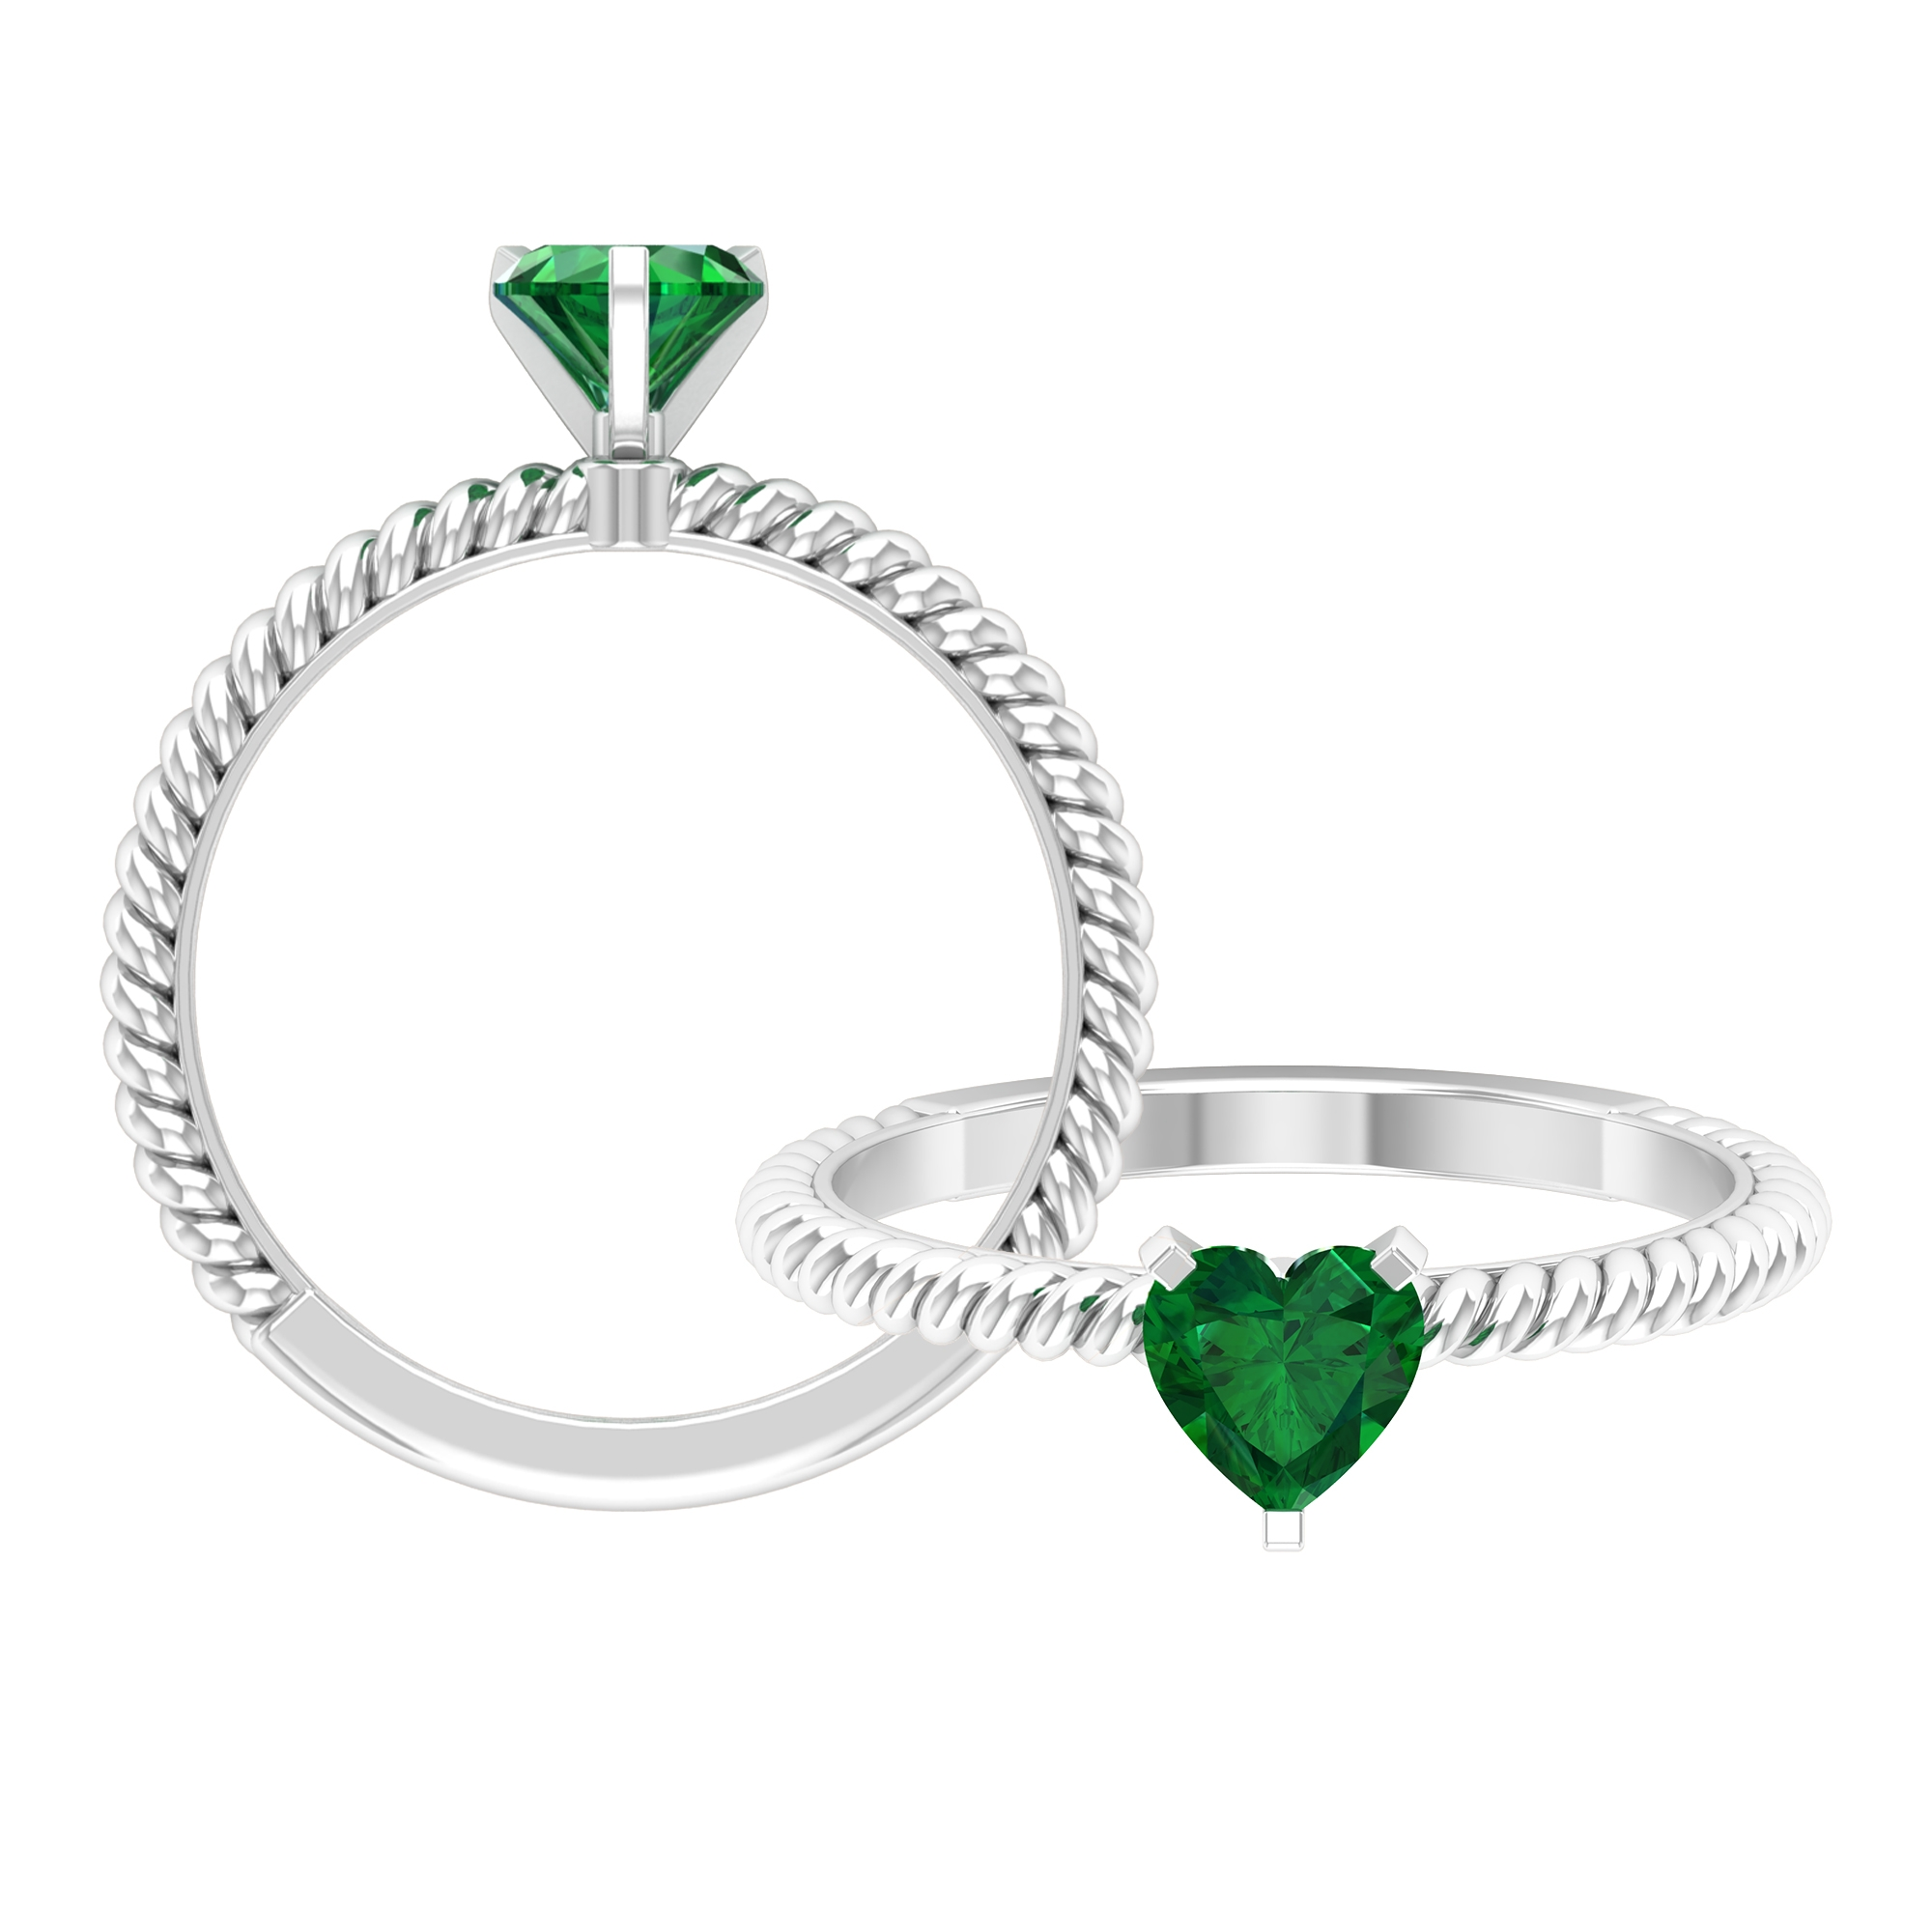 5.40 MM Three Prong Peg Head Set Heart Shape Emerald Solitaire Ring with Twisted Rope